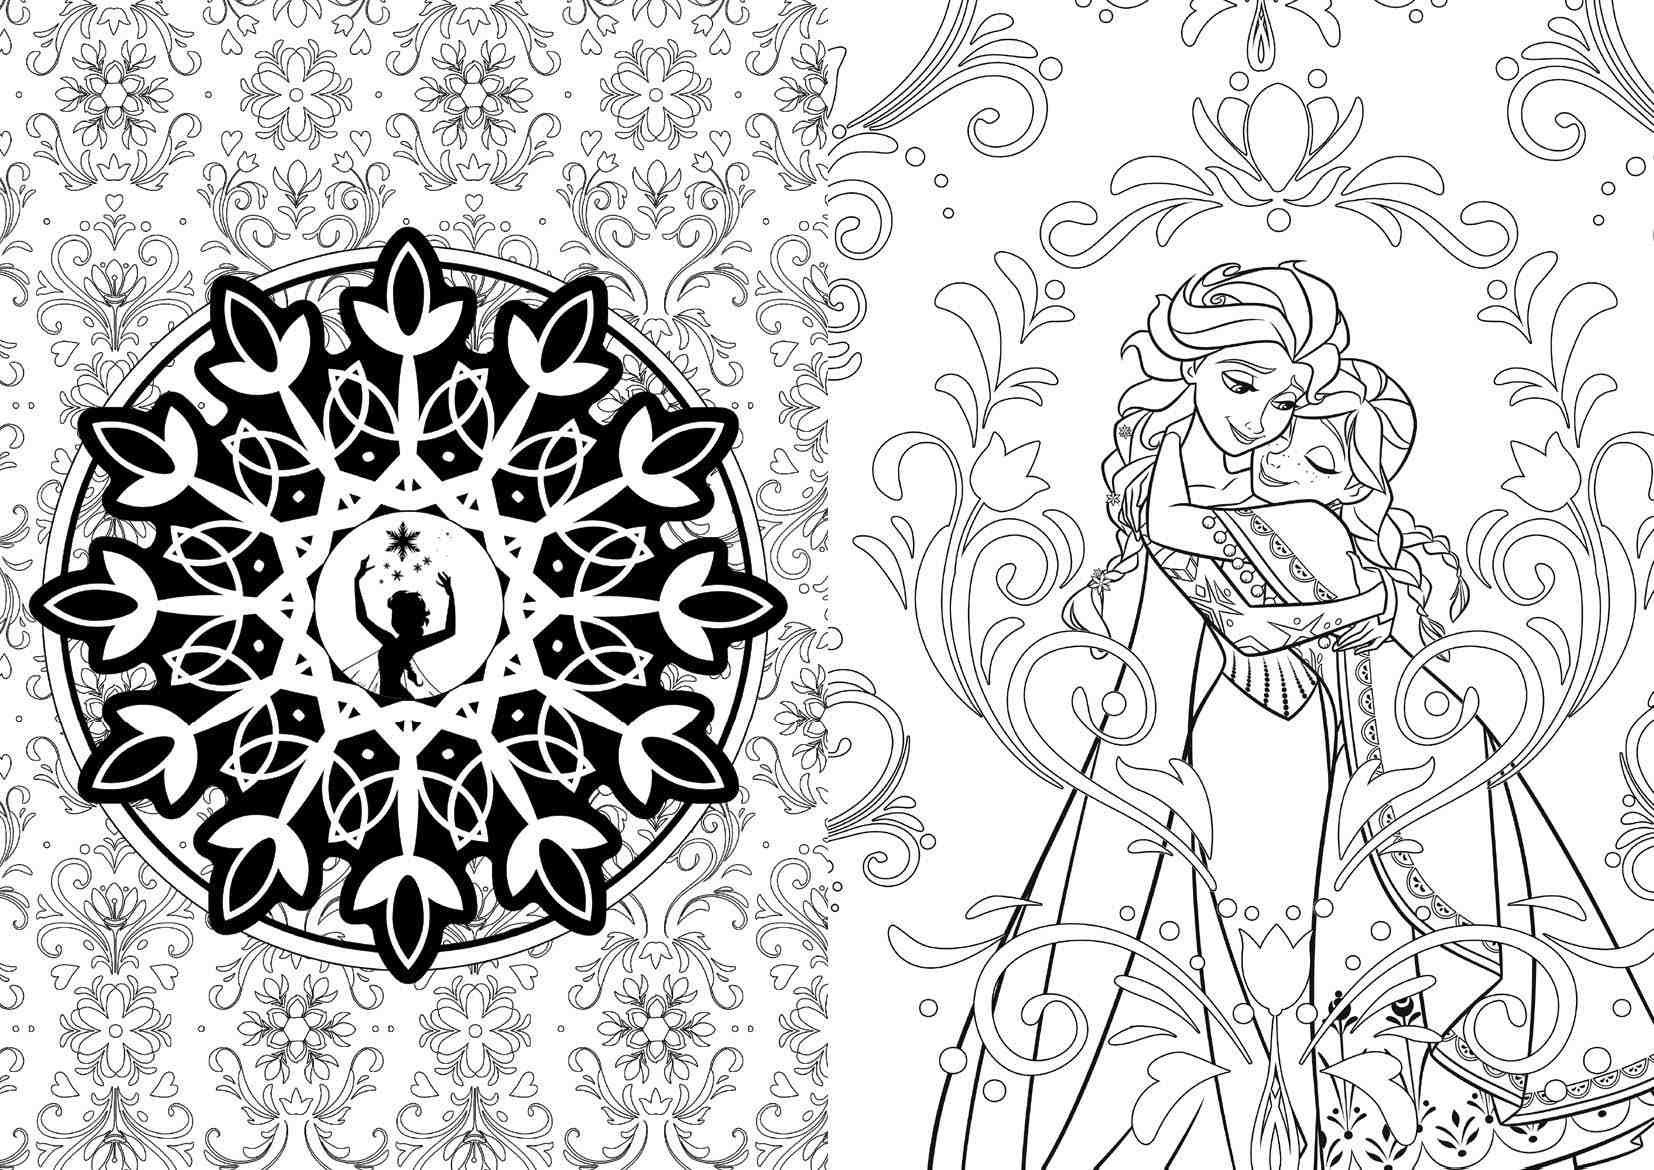 Best ideas about Disney Adult Coloring Books . Save or Pin Disney fers Coloring Books for Adults Now.